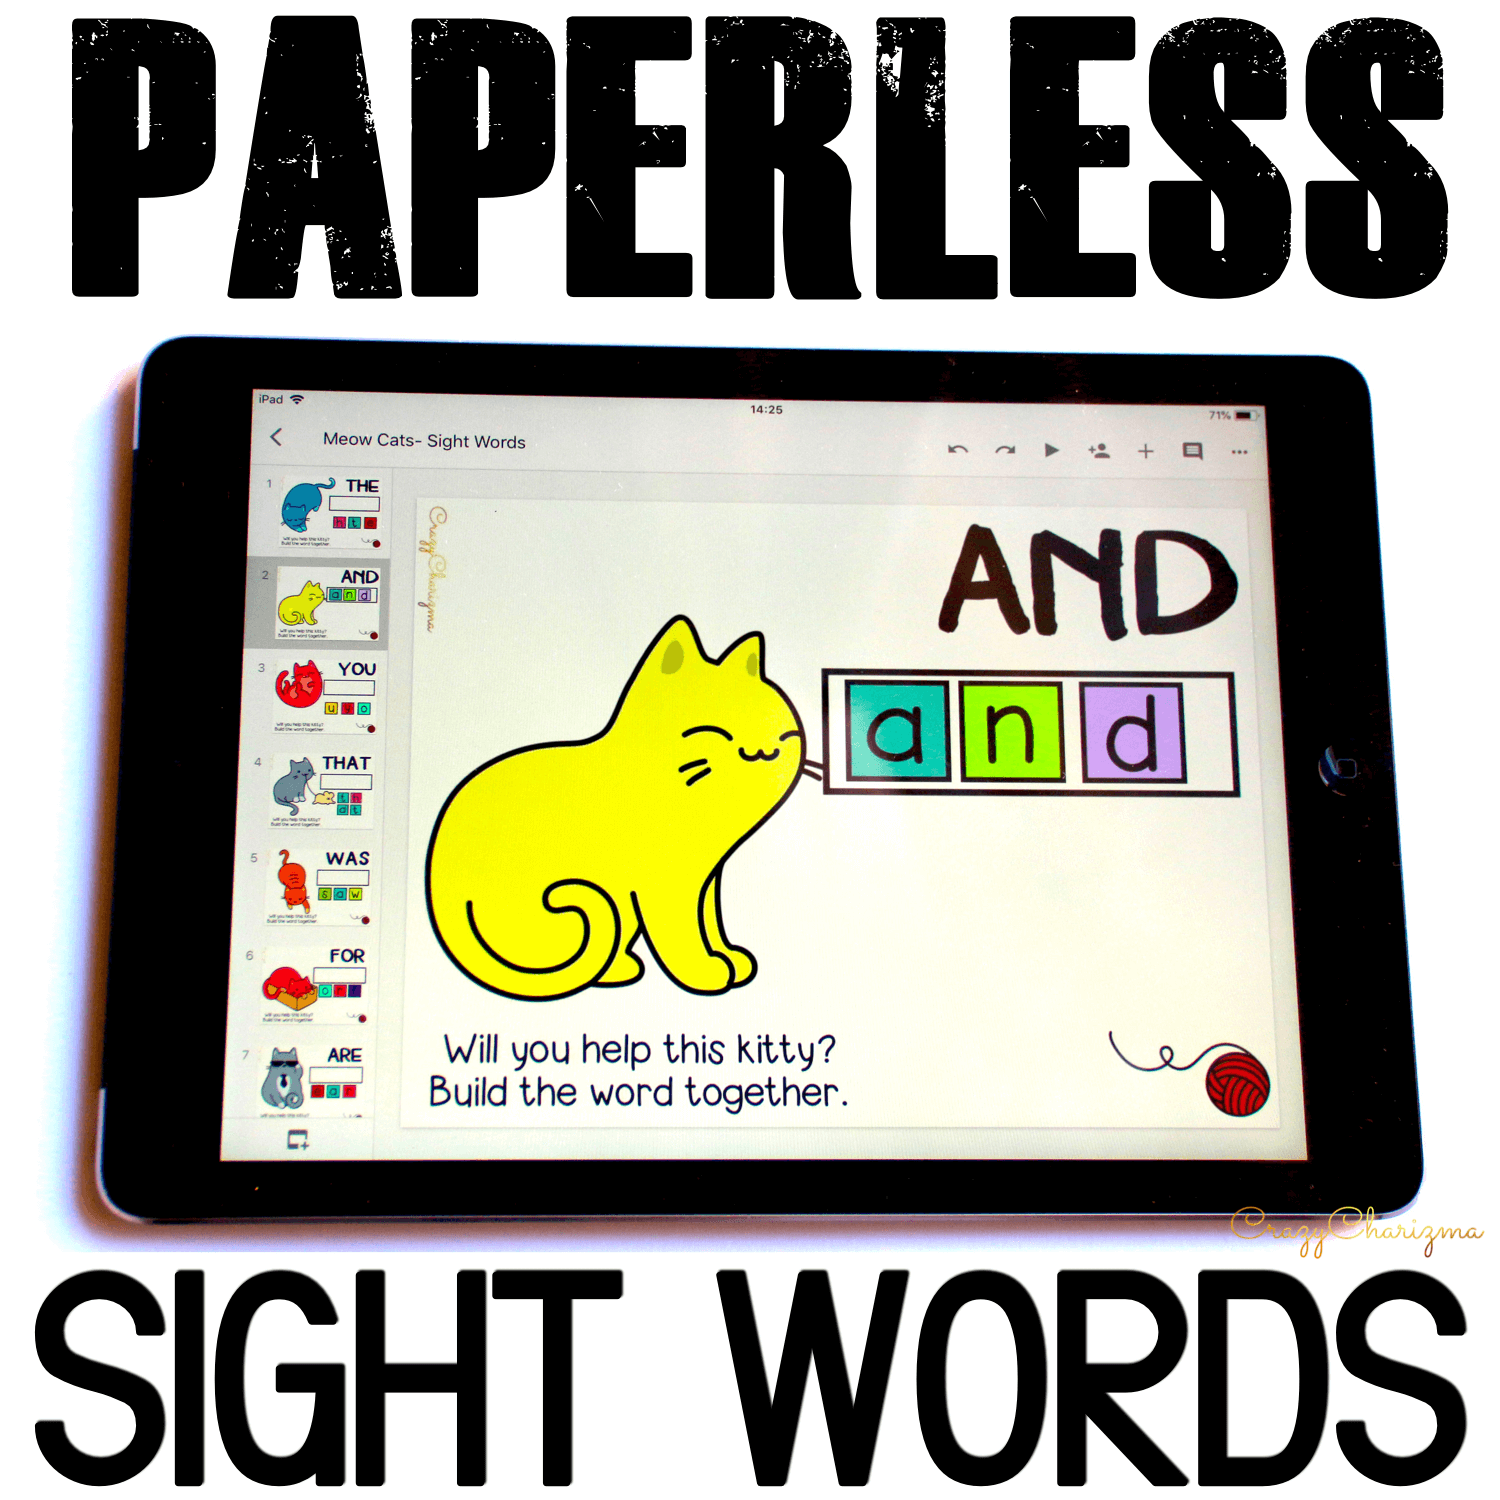 Google Classroom Activities for Kindergarten | Sight Words Games: Using Google Classroom in kindergarten? Then you'll definitely need engaging and fun activities to practice sight words! Check out these quick sight words games.